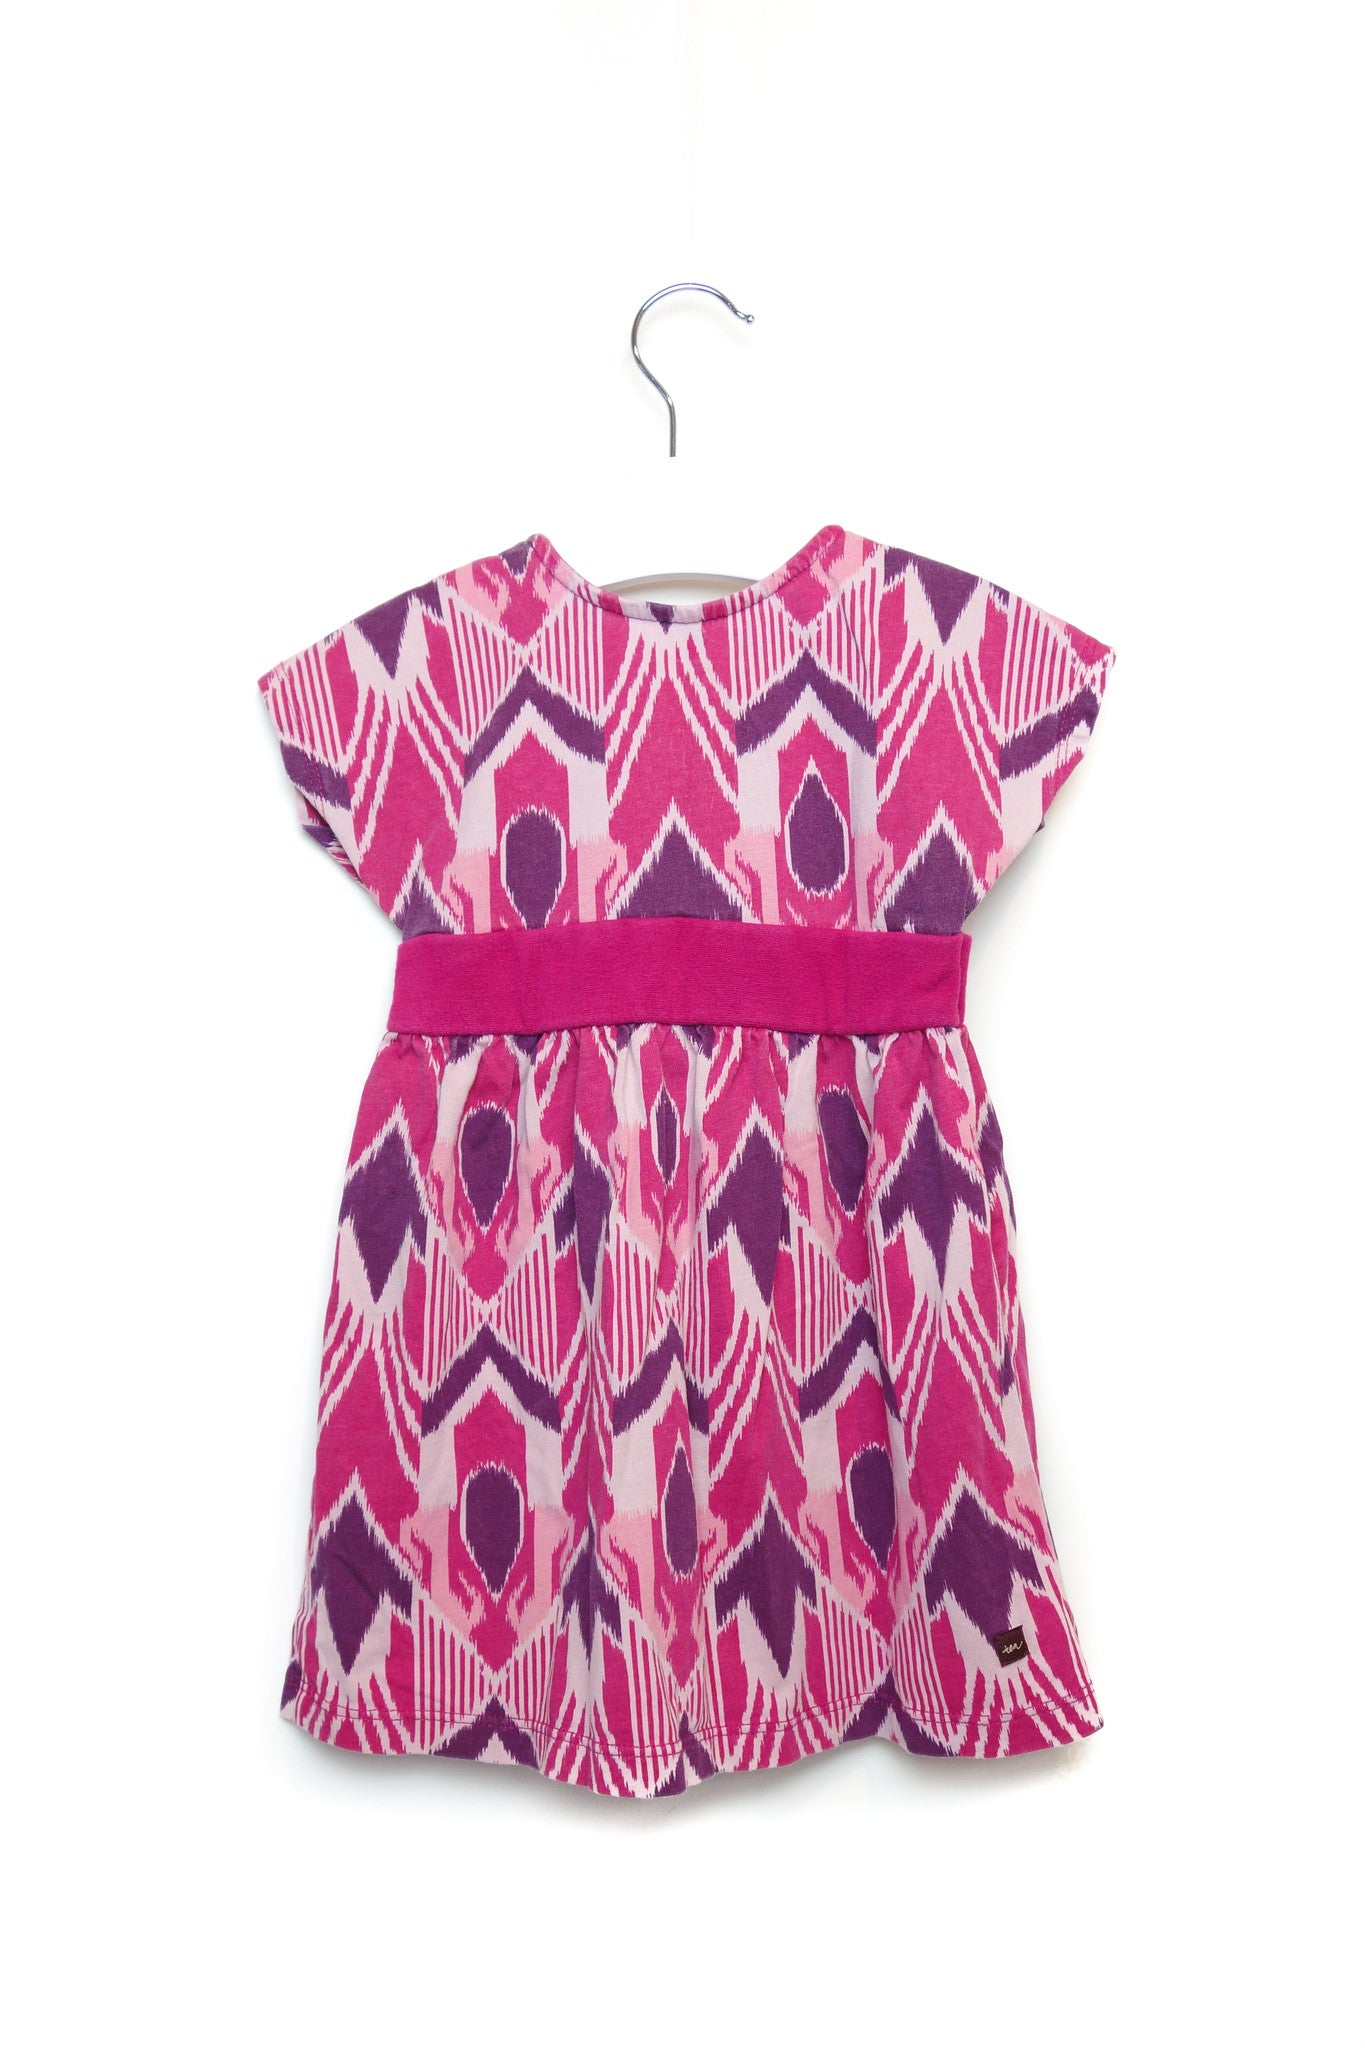 10001402~Dress 18-24M, Tea at Retykle - Online Baby & Kids Clothing Up to 90% Off